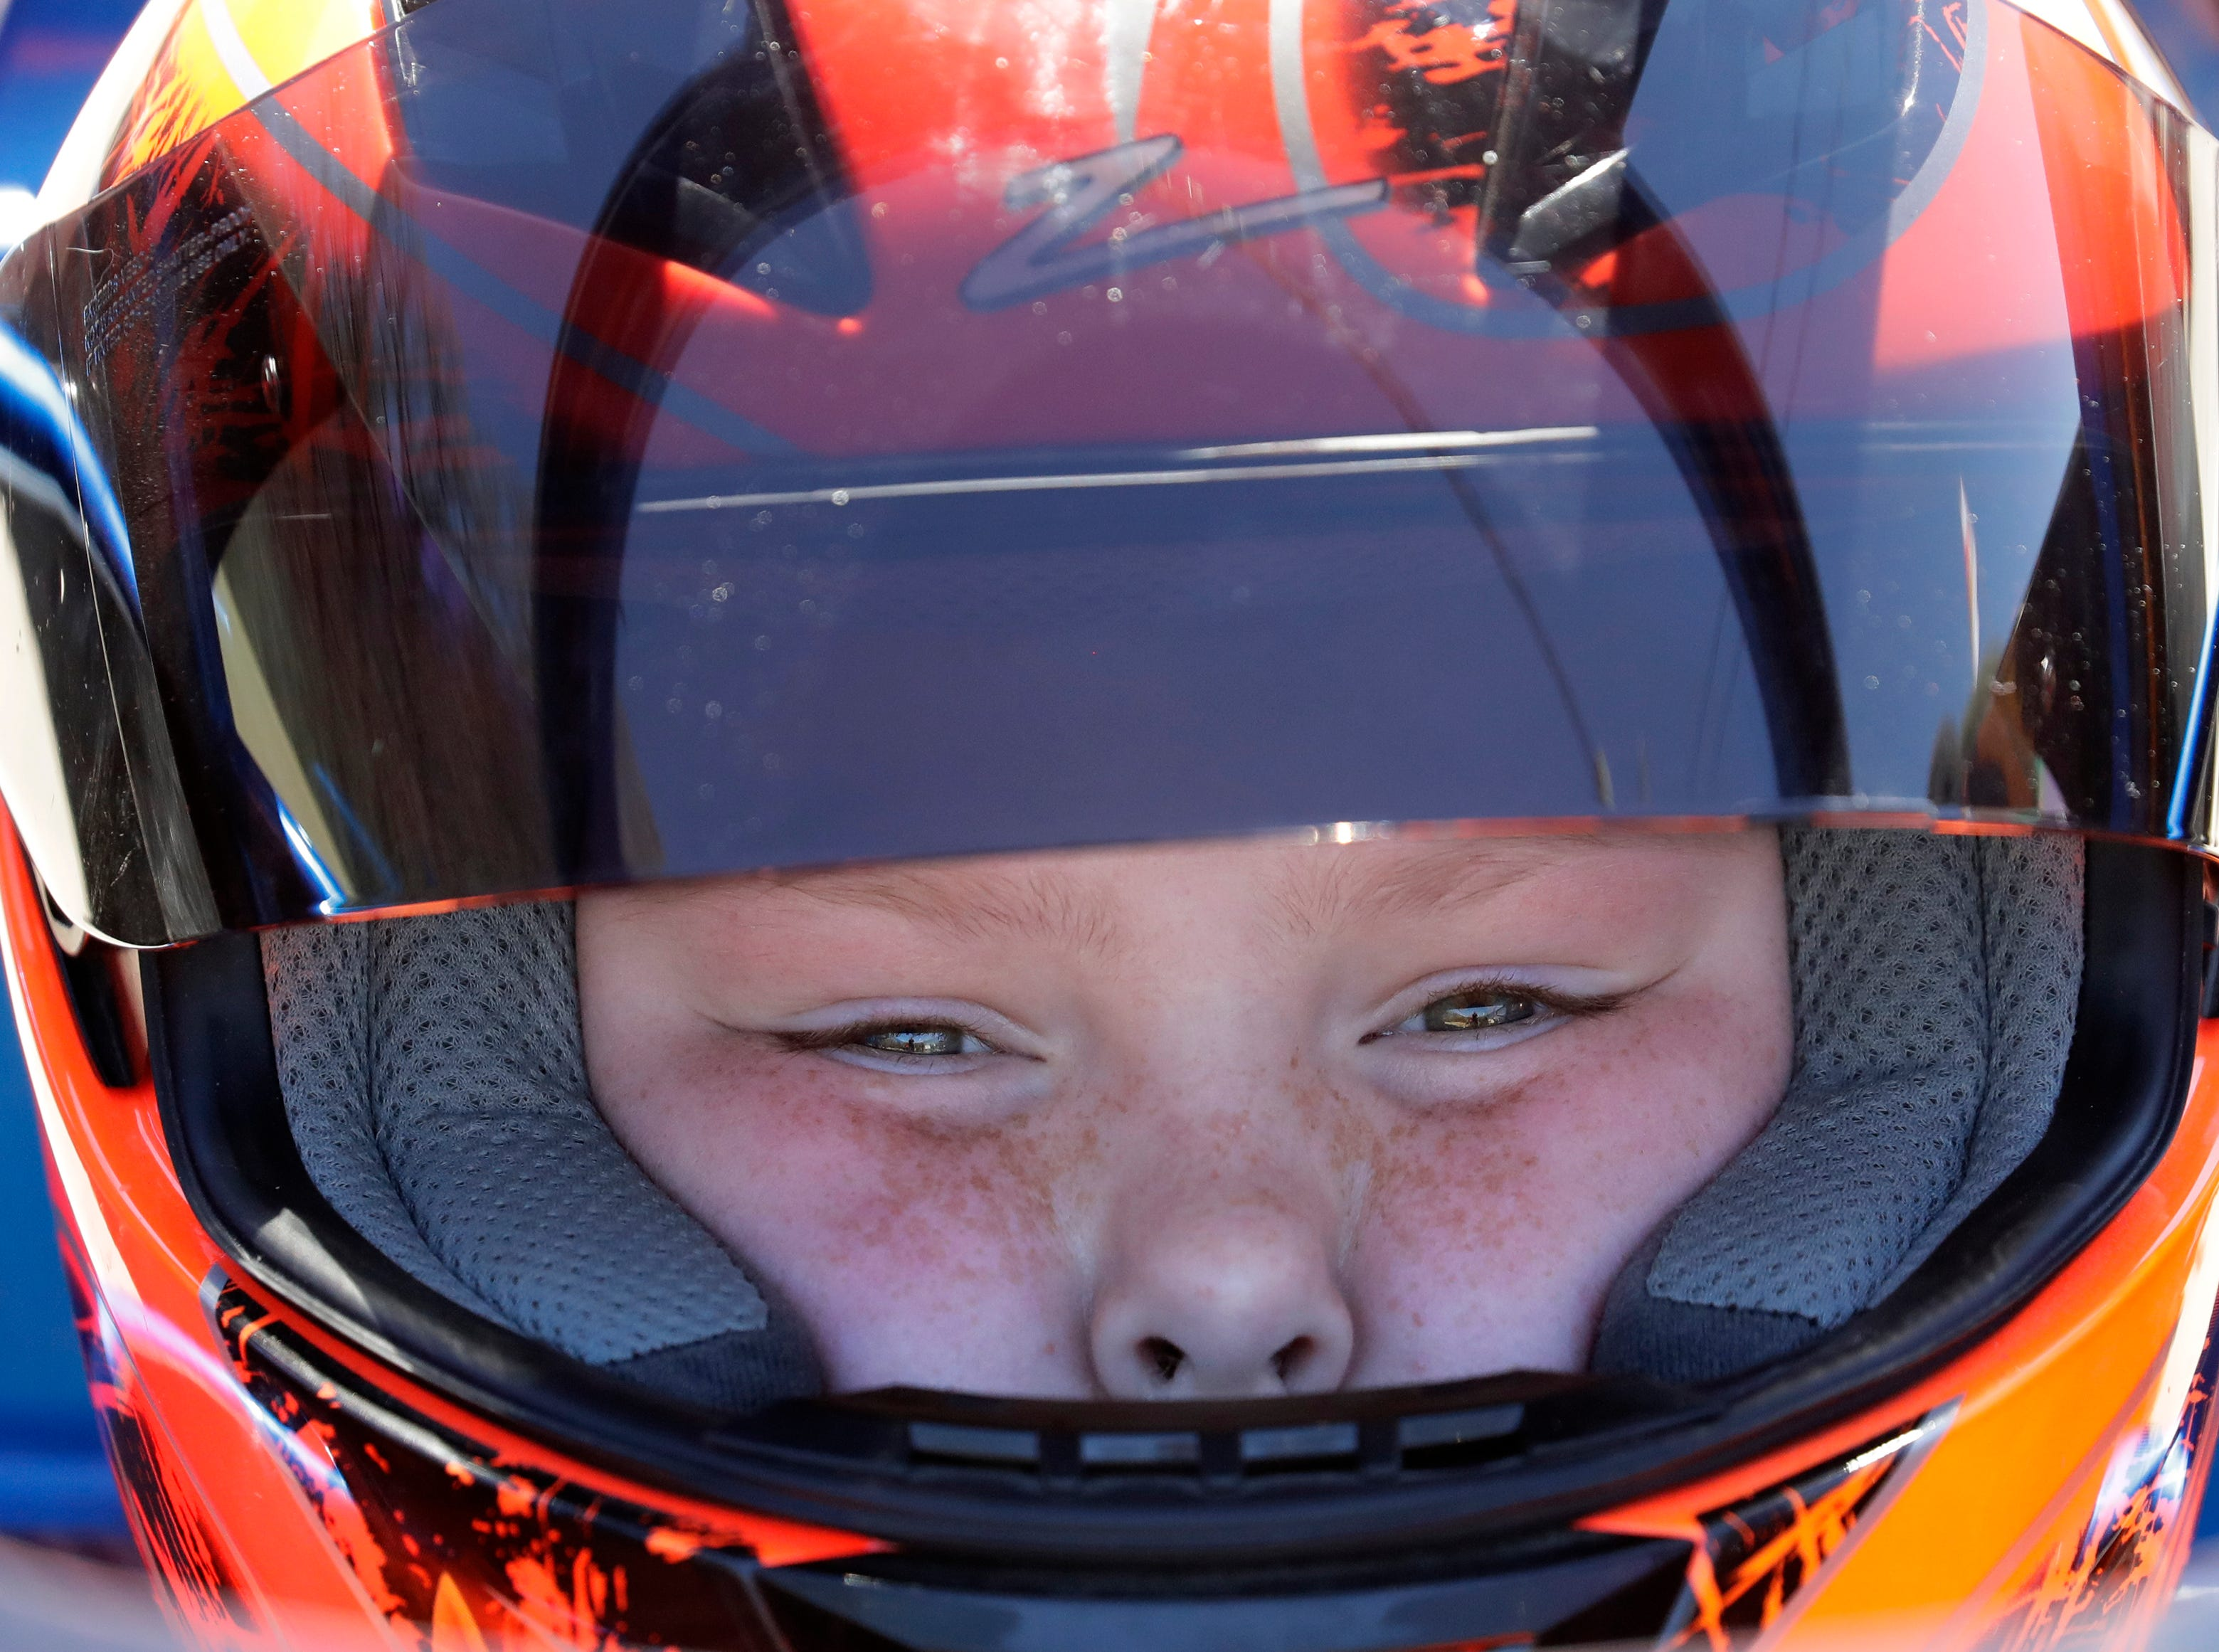 Braeden Emmer, 10, of Darboy is focused and ready to take his junior dragster for a practice run during the Wisconsin International Raceway Strip Test & Tune event Saturday, April 19, 2019, in Kaukauna, Wis. Dan Powers/USA TODAY NETWORK-Wisconsin